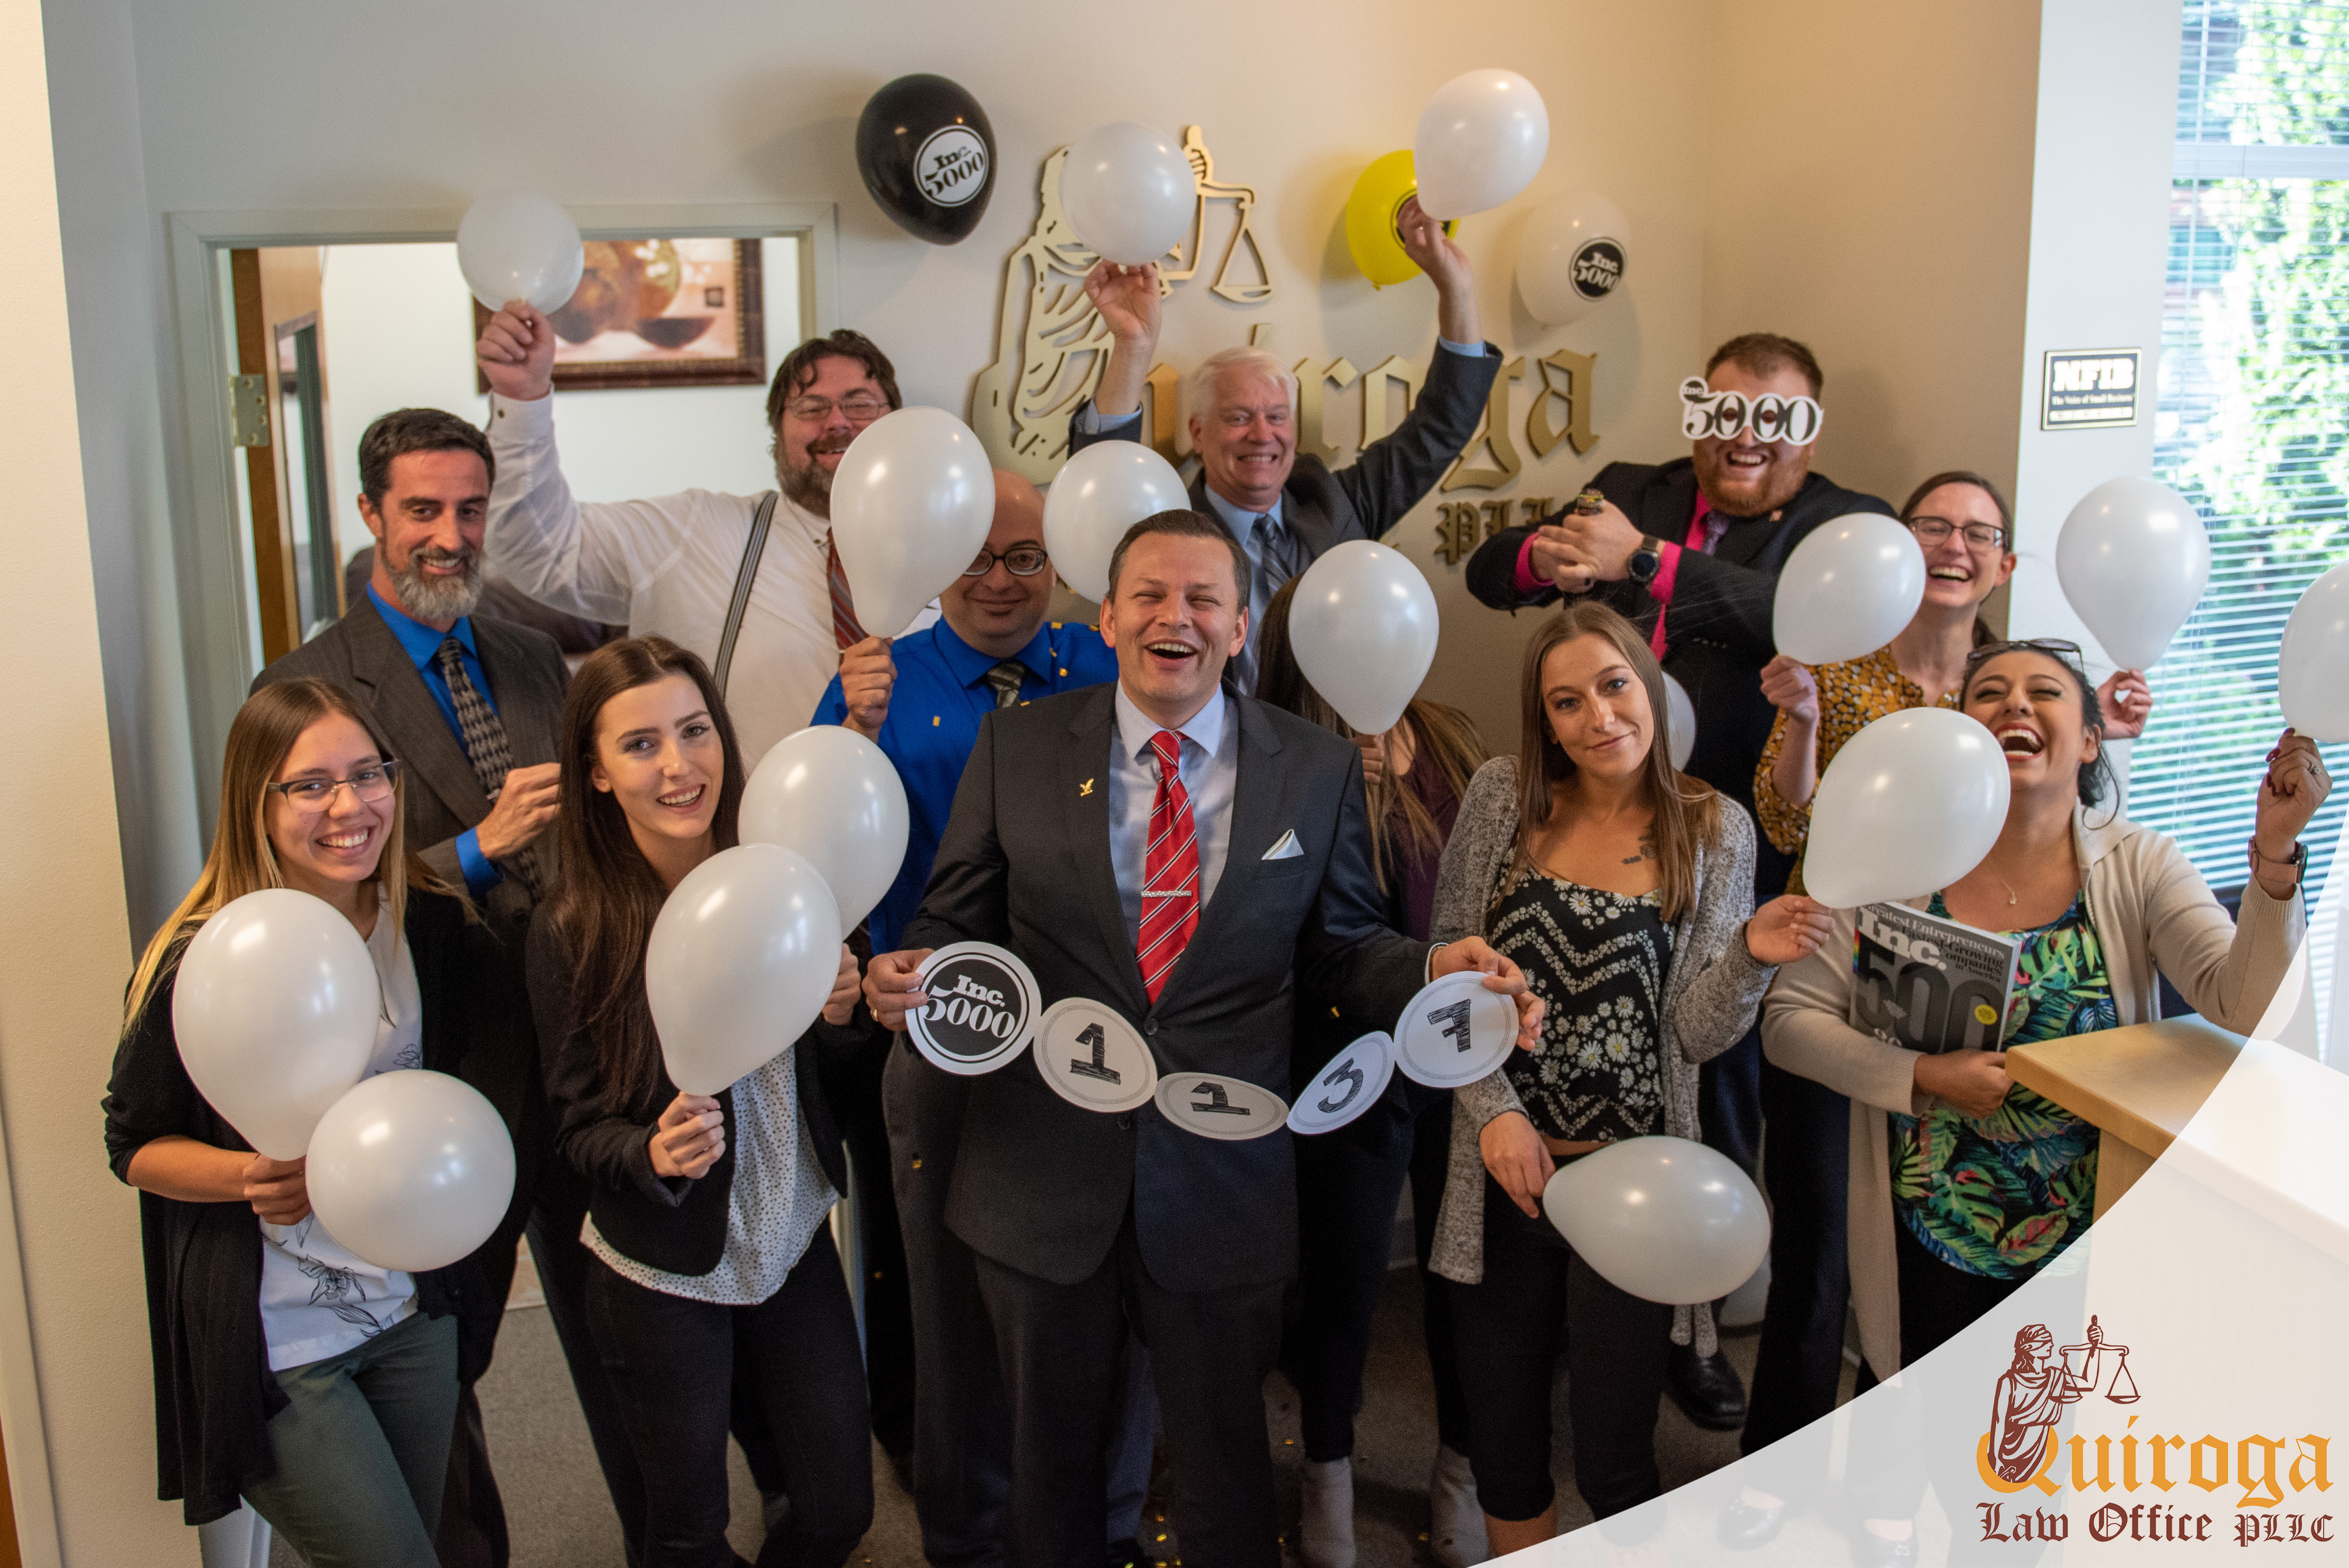 Quiroga Law Office, PLLC Ranks No. 1137 on the 2019 Inc. 5000